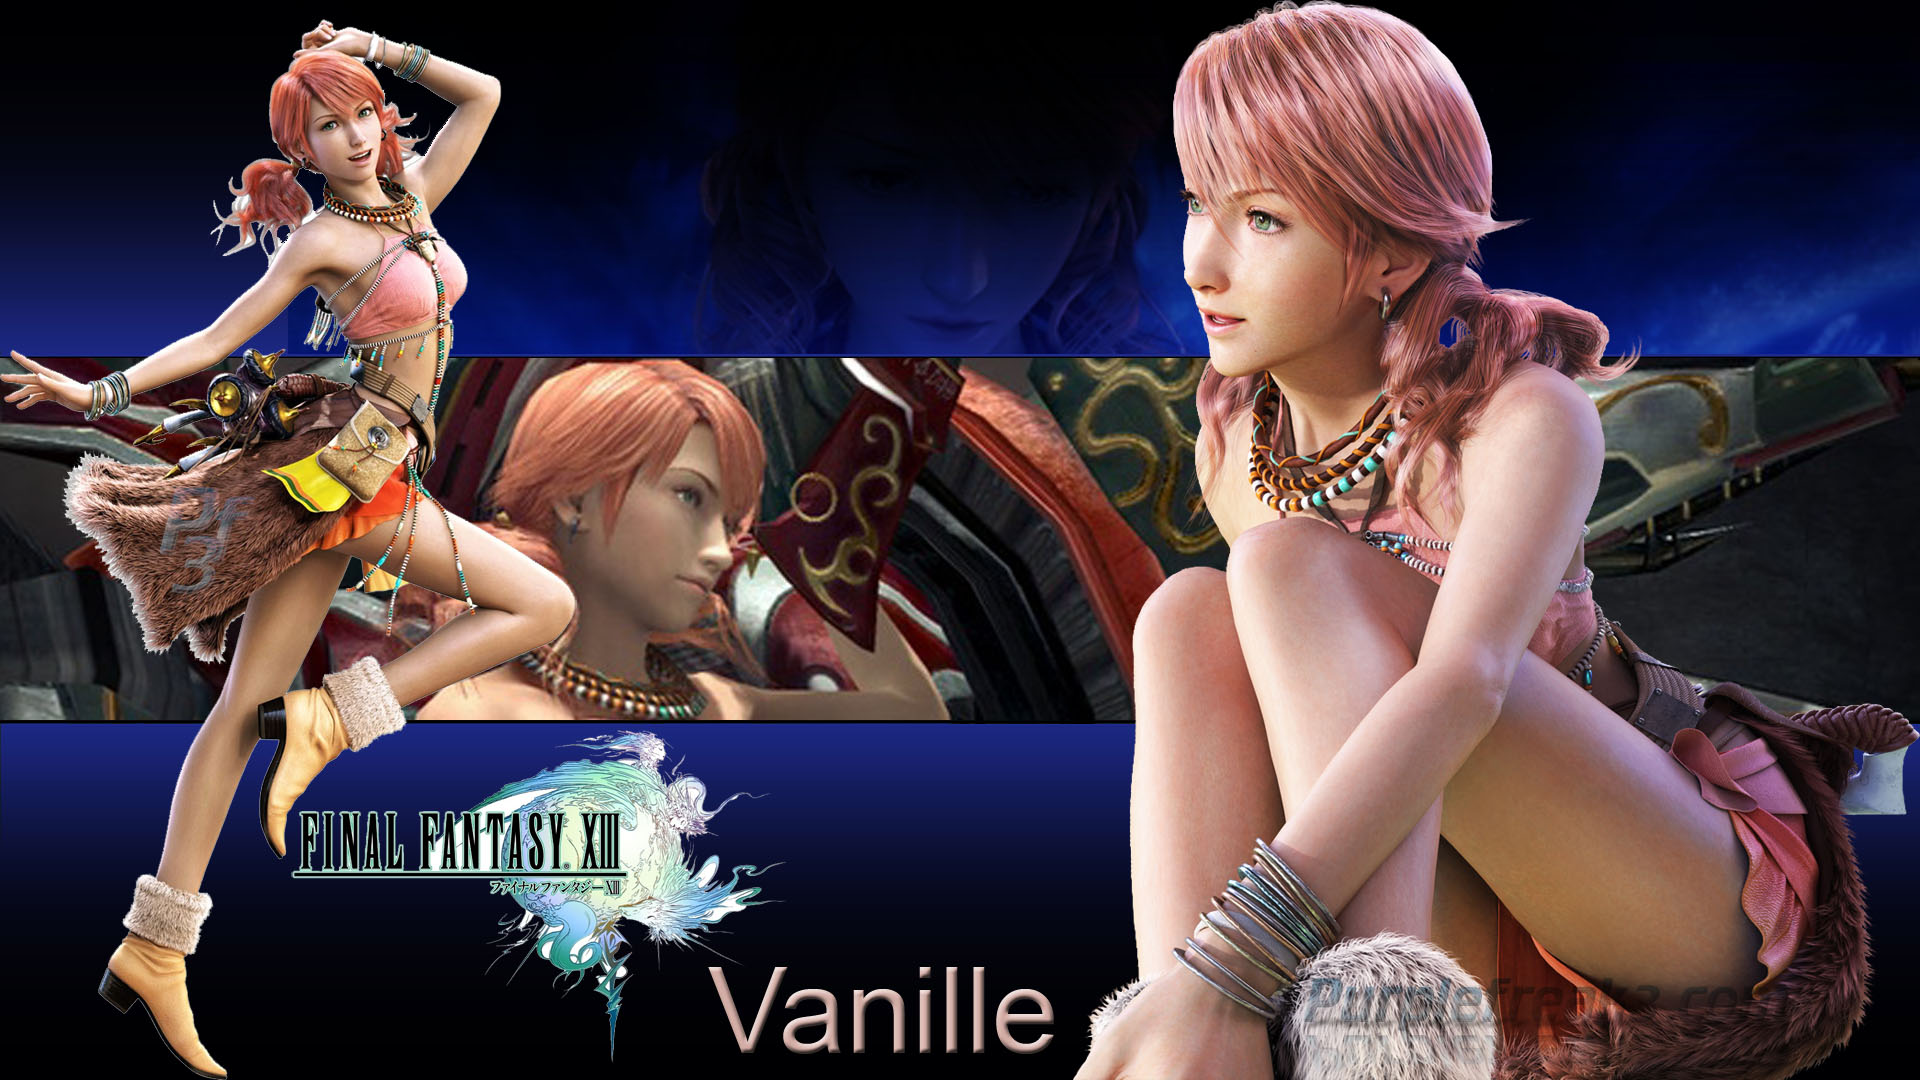 Final Fantasy XIII Vanille HD Wallpaper